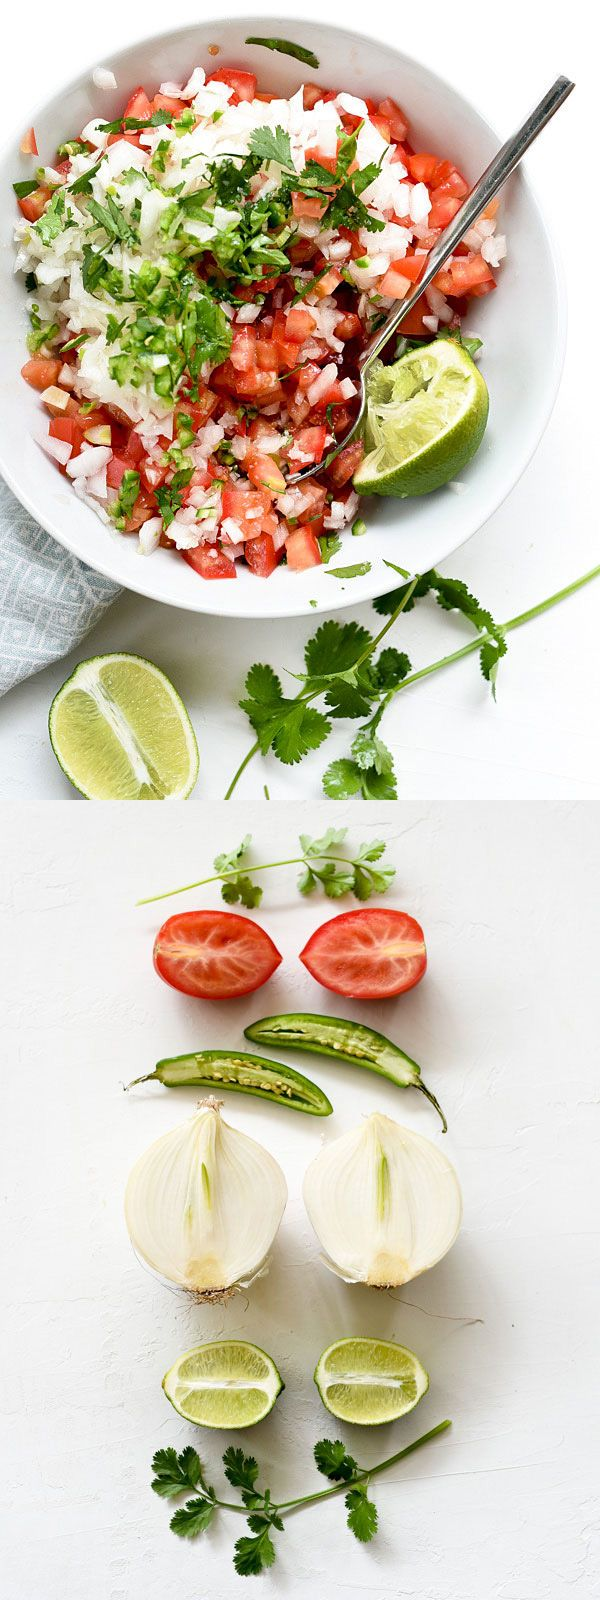 There's nothing like fresh salsa and chips to get the party started | foodiecrush.com